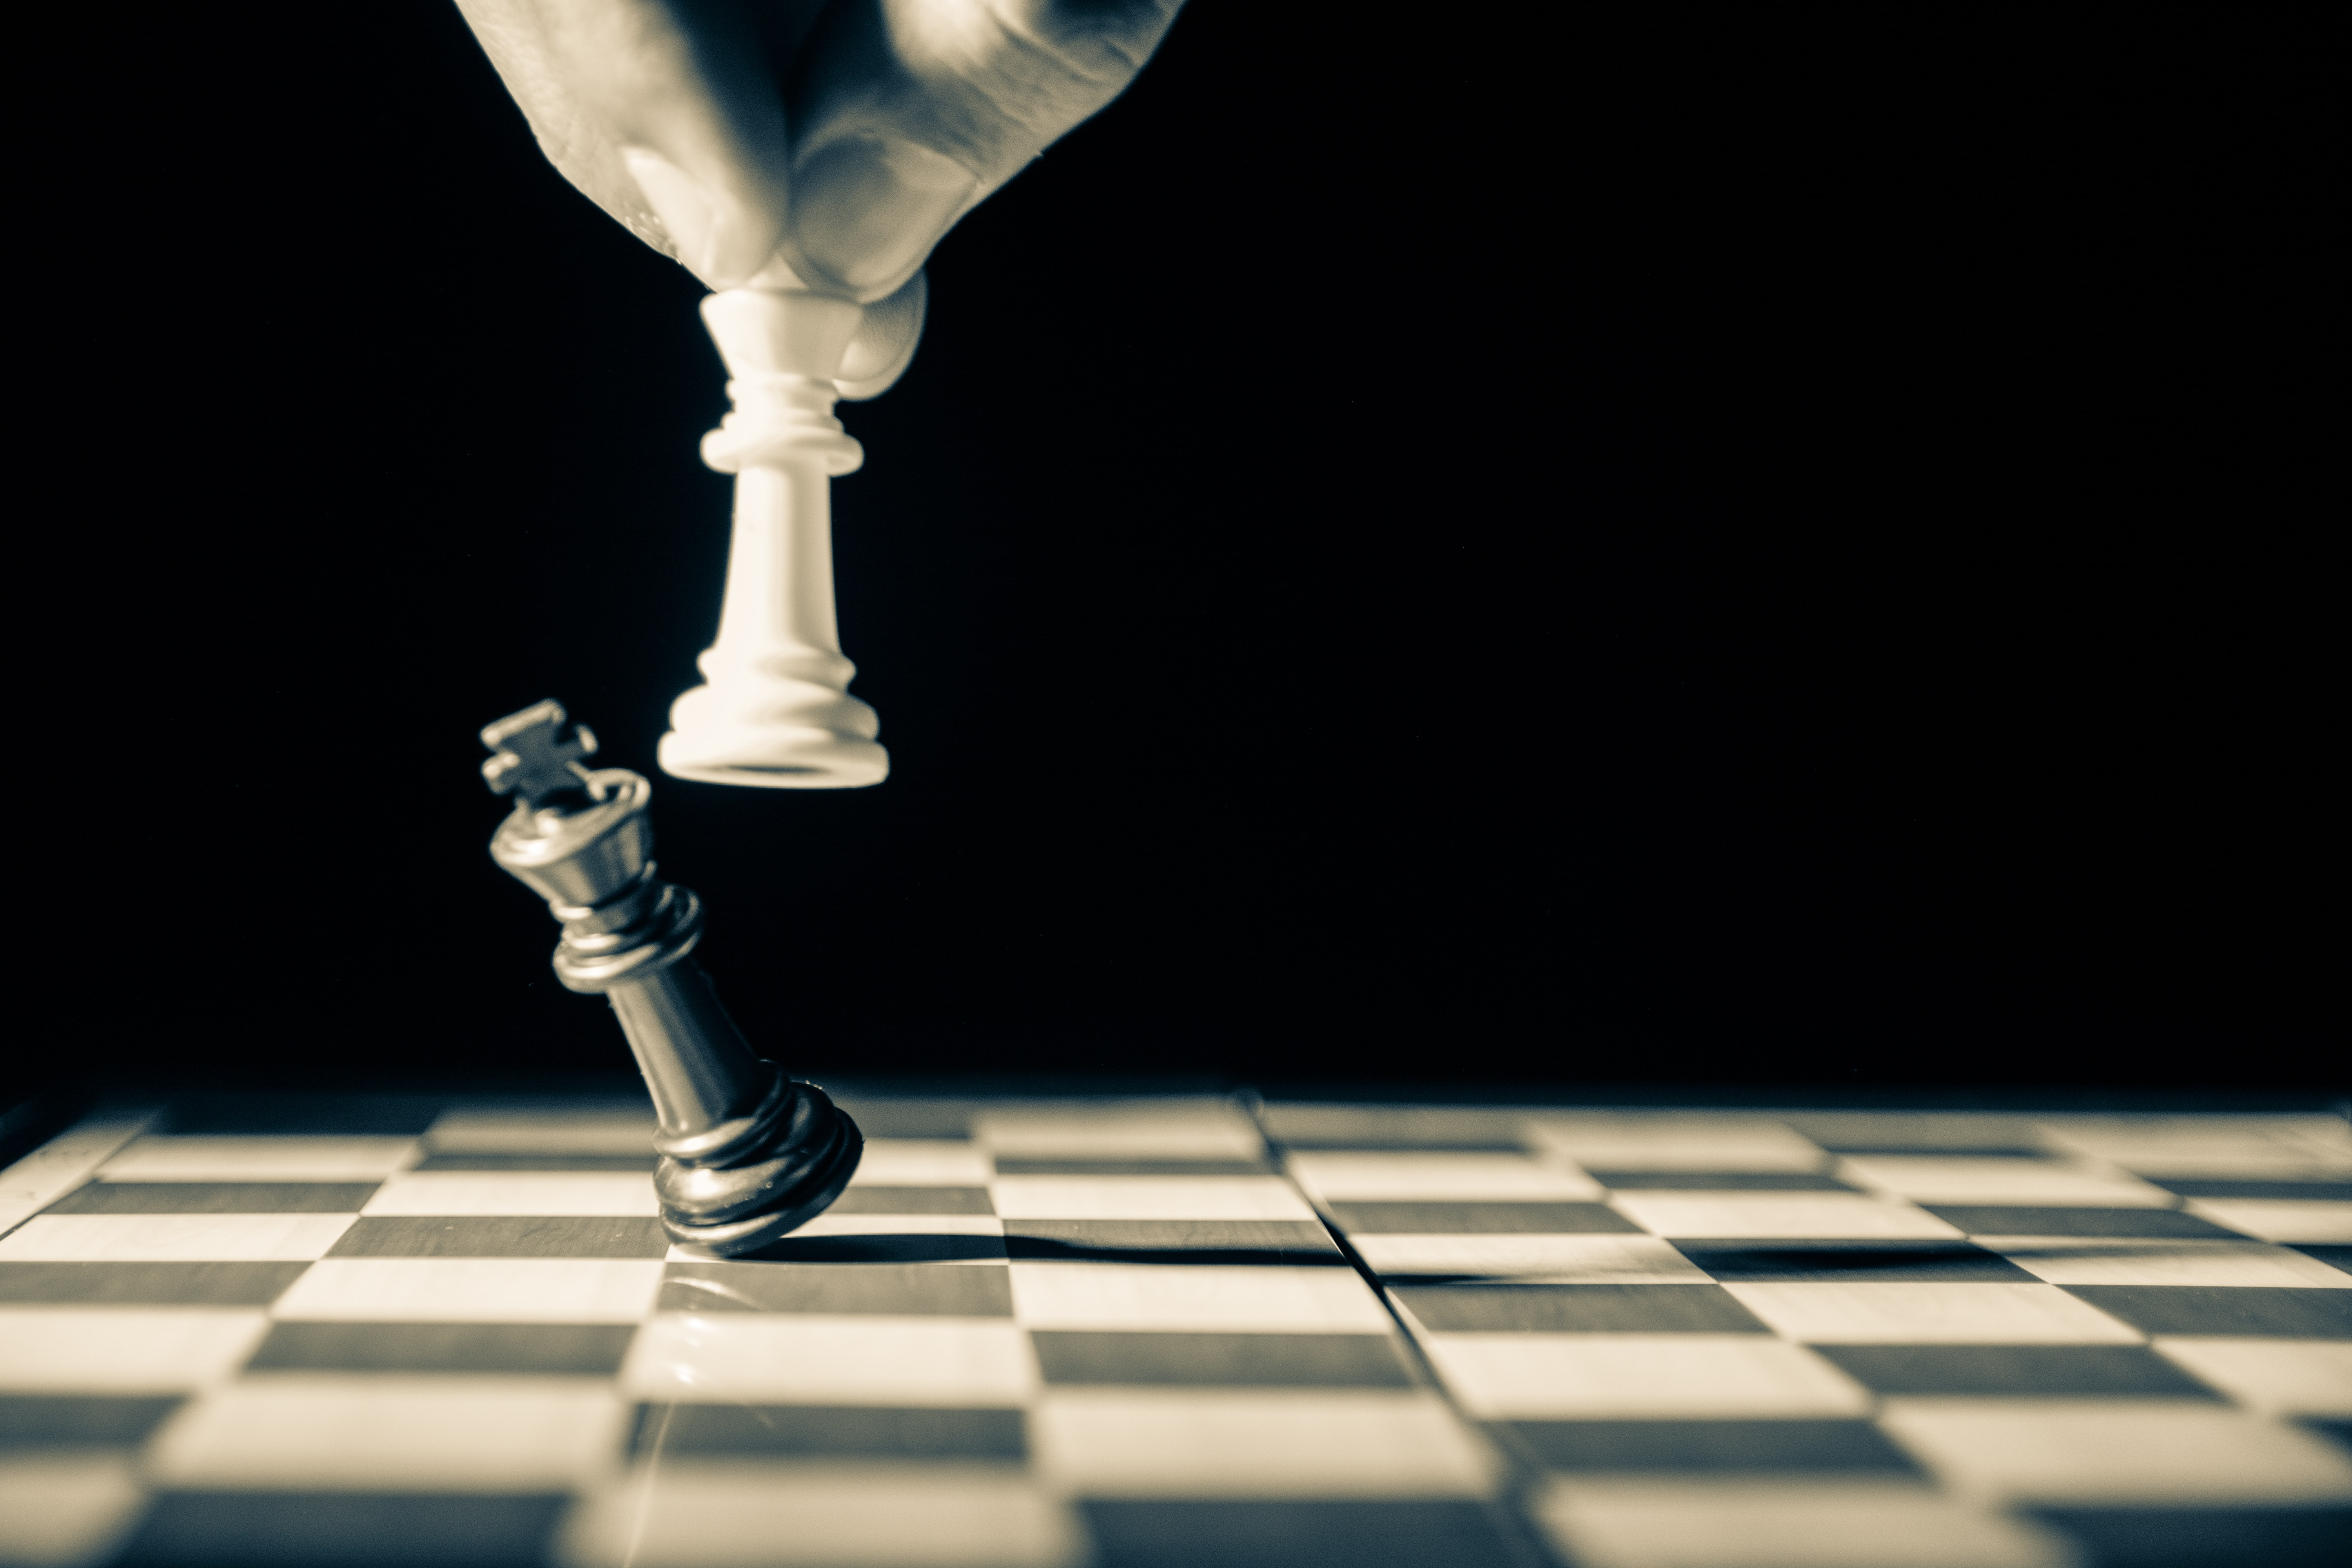 A white chess piece knocking a black chess piece off the game's board. Photo courtesy of GR Stocks on Unsplash.